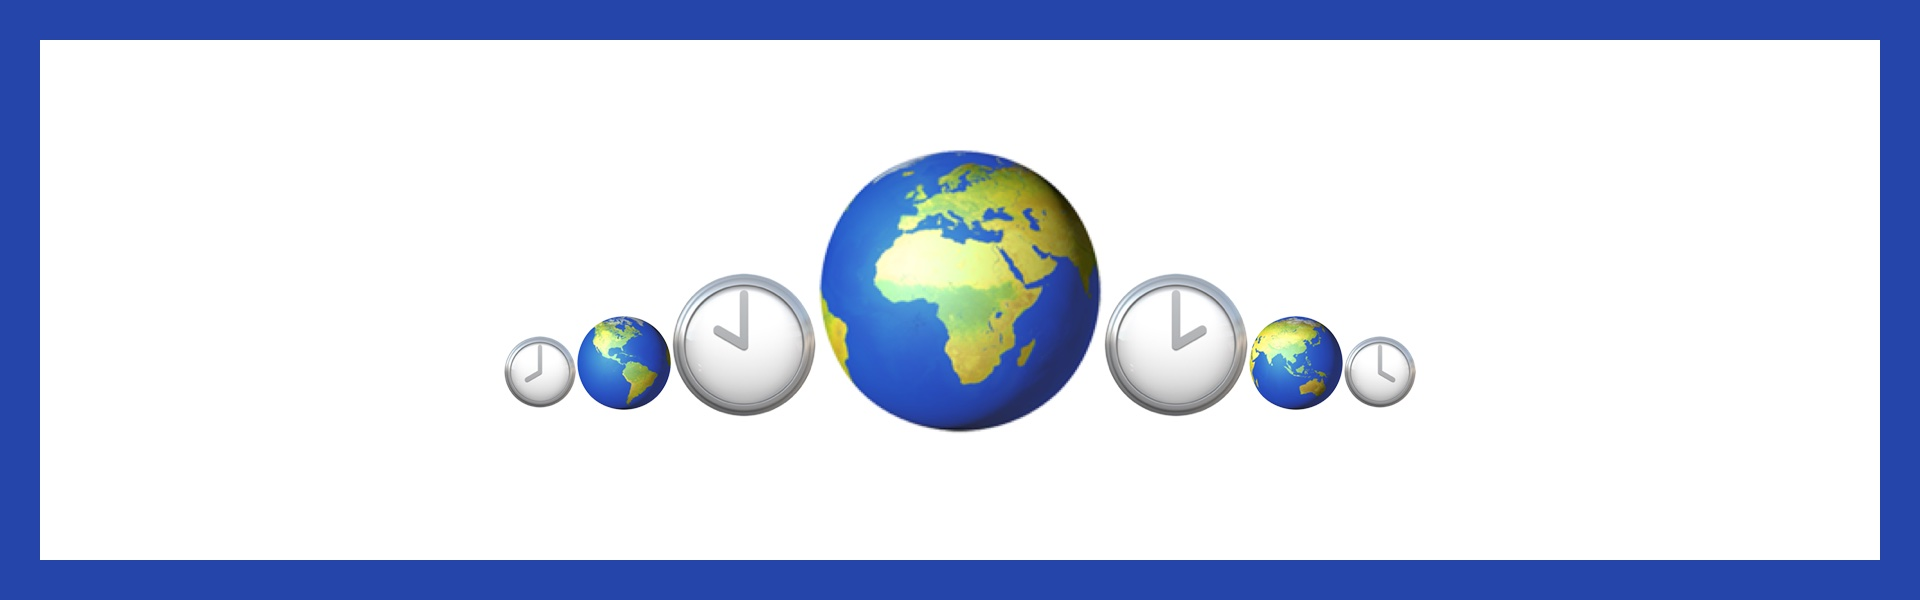 Different sides of the world offset by clocks showing different times